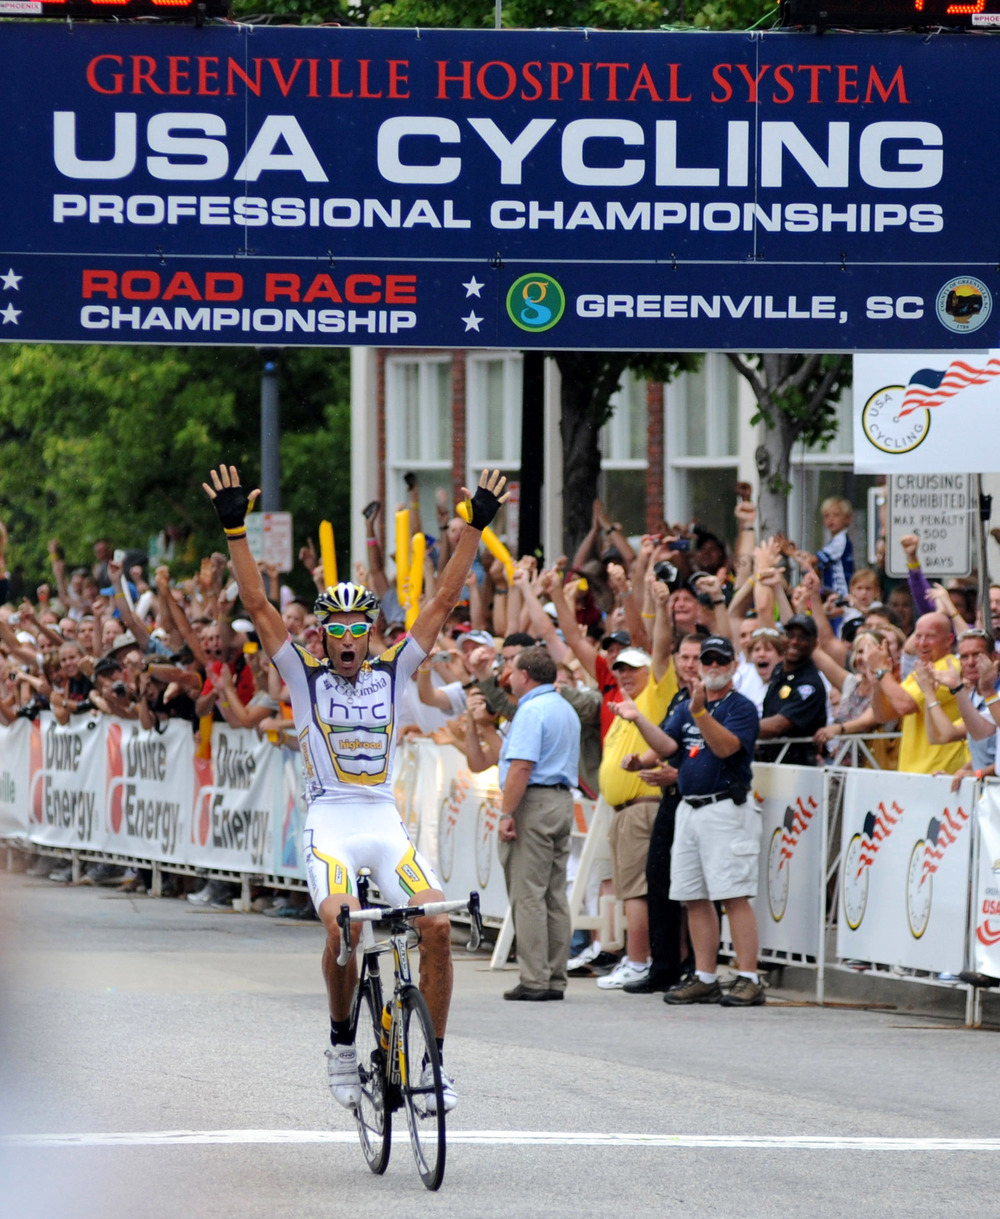 Fans cheer for the winner of the Greenville Hospital System USA Cycling Pro Championships.  (August 30, 2009)